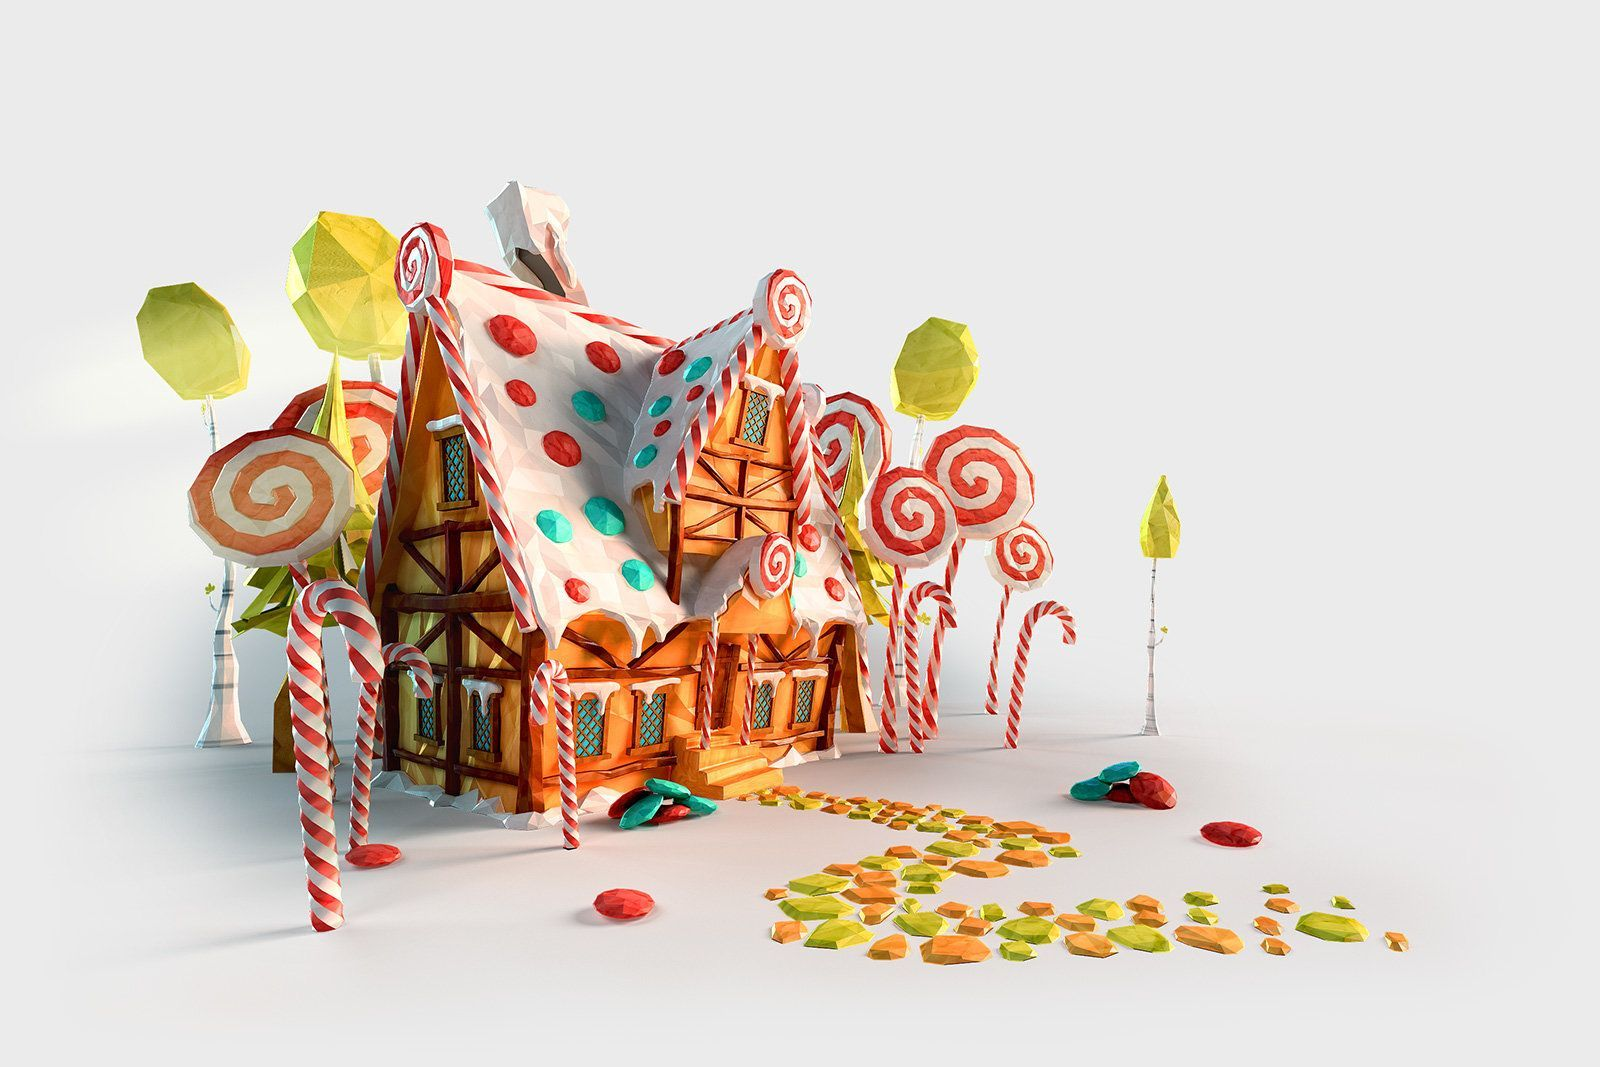 Image Result For Gingerbread House Toon 3d Rendered Candy House Fairytale Illustration Fairy Tales